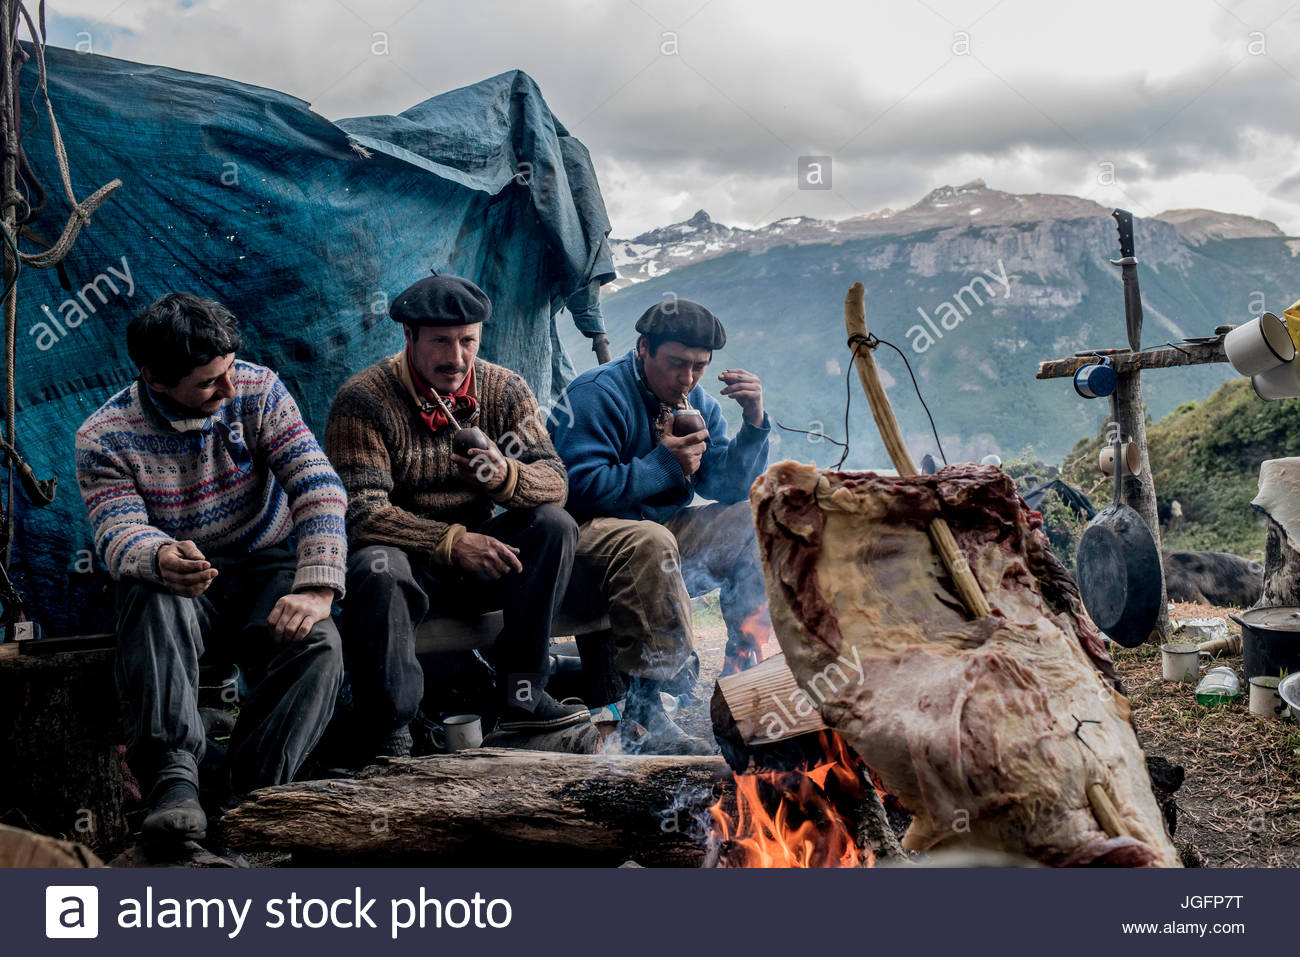 Bagualeros, or cowboys who capture feral livestock, barbecue meat from a feral animal and drink mate tea. - Stock Image